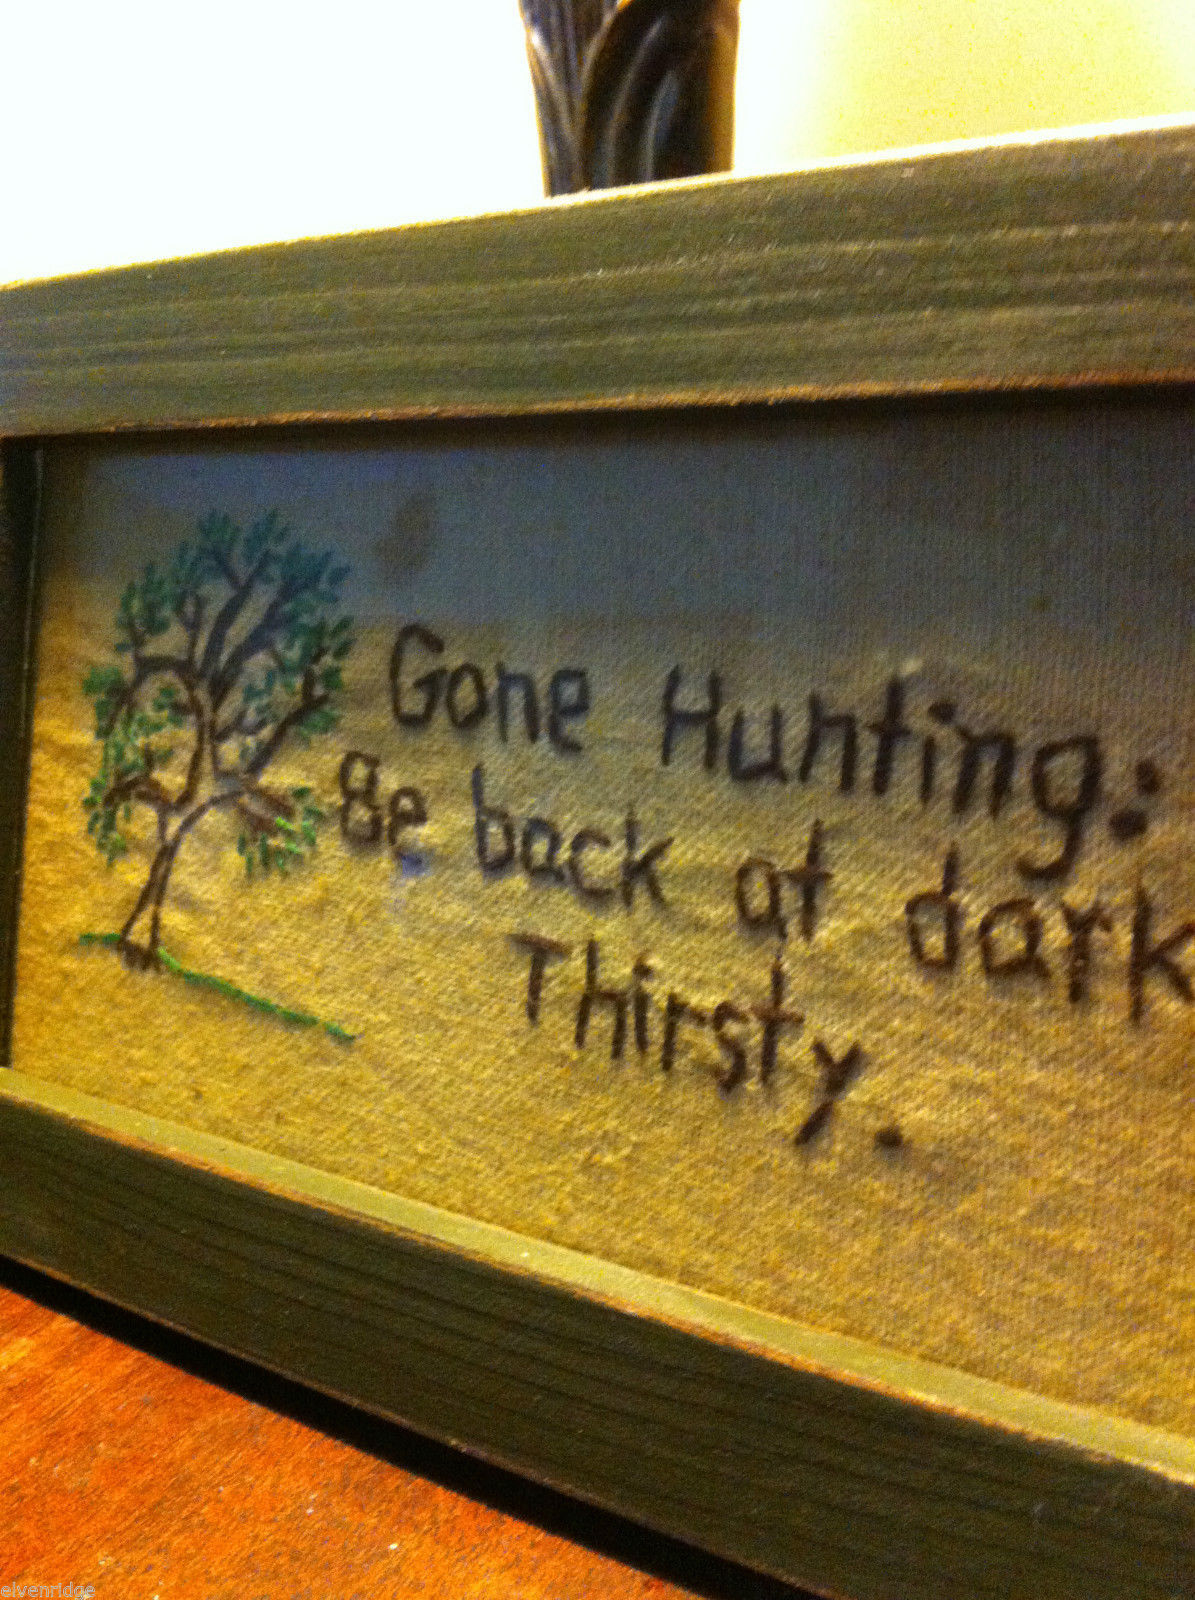 Distressed look new stitchery Gone Hunting Back at Dark - Thirsty whimsical